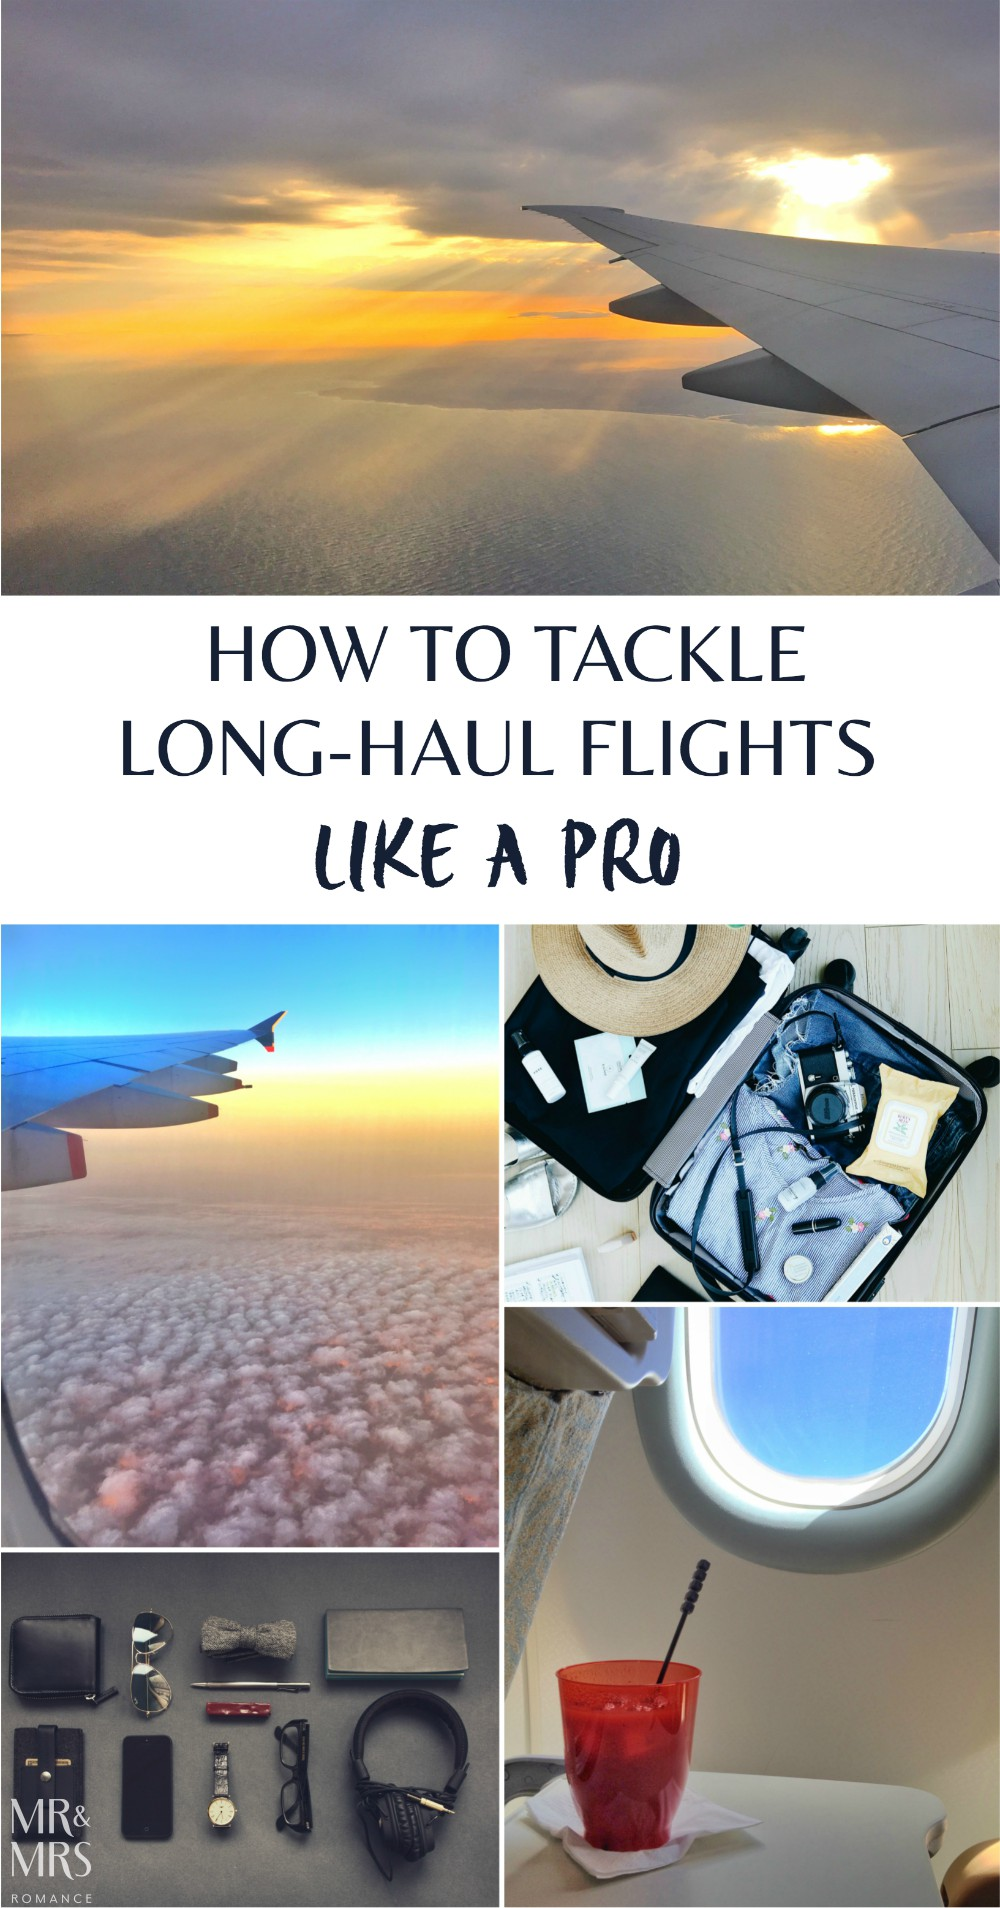 Long-haul flight tips - Mr and Mrs Romance - title